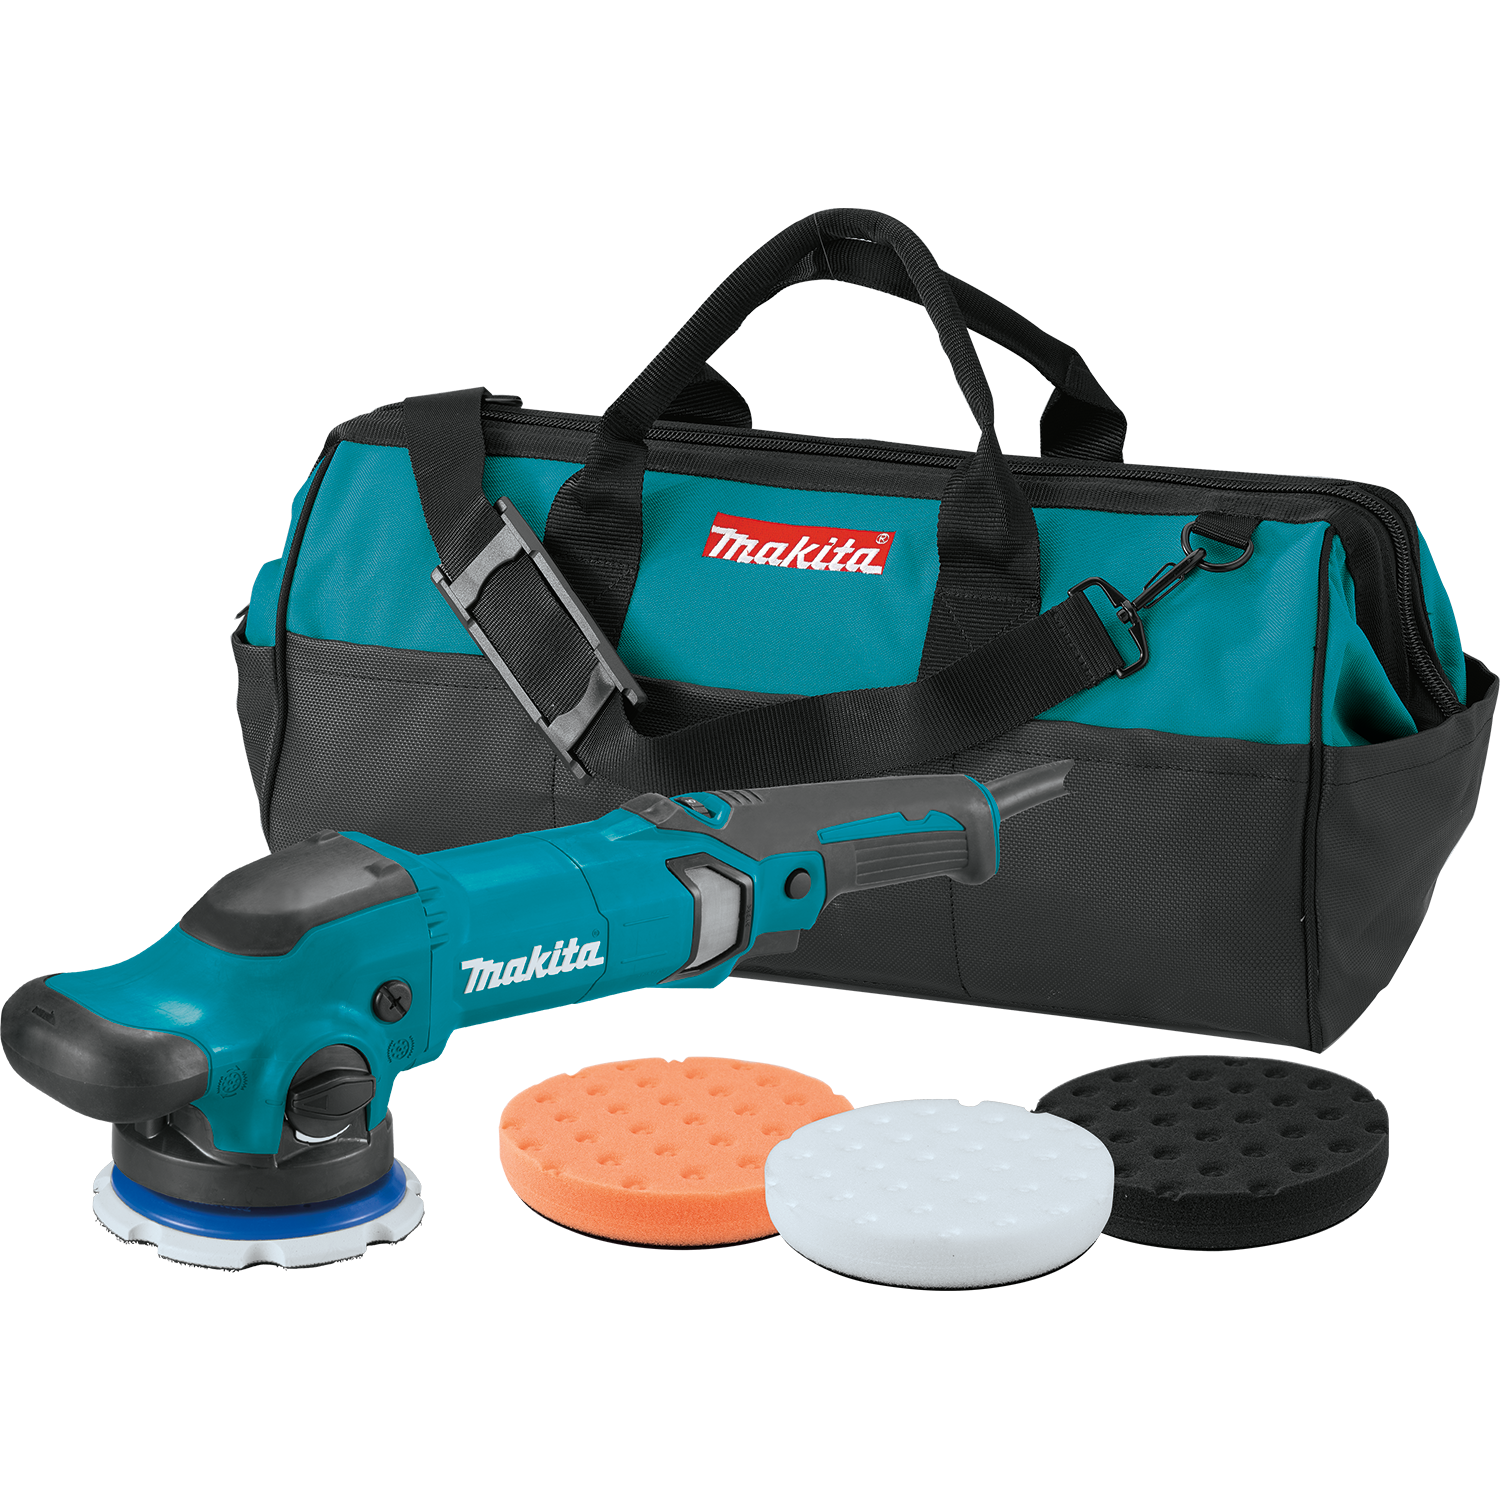 Makita USA - Product Details -PO5000CX2 on